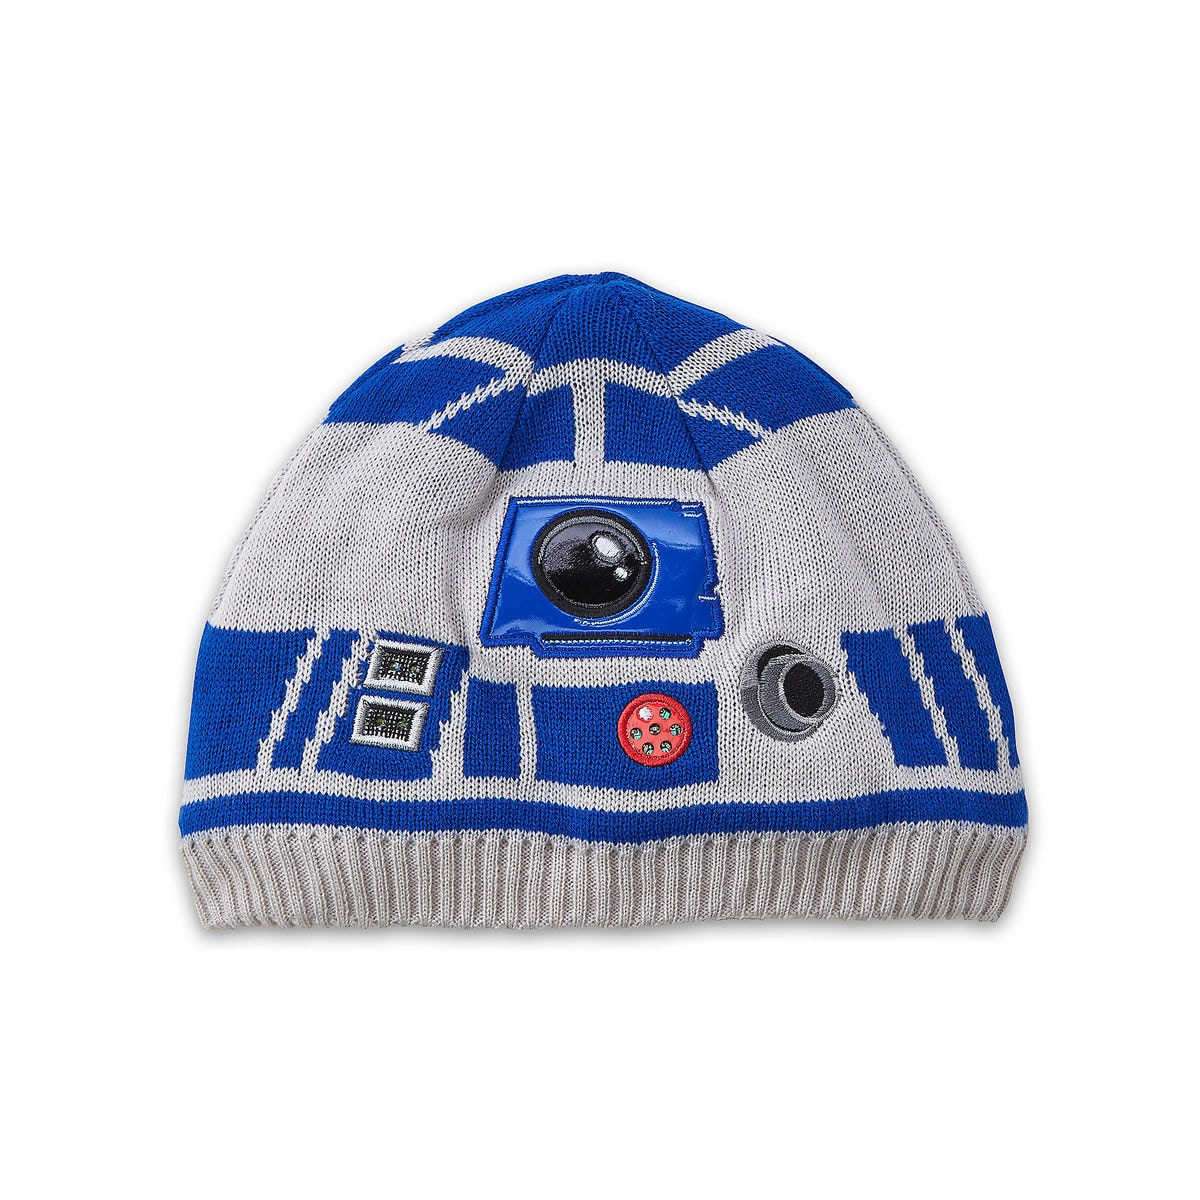 d831faa21d8 Product Image of R2-D2 Light-Up Beanie Hat for Kids - Star Wars